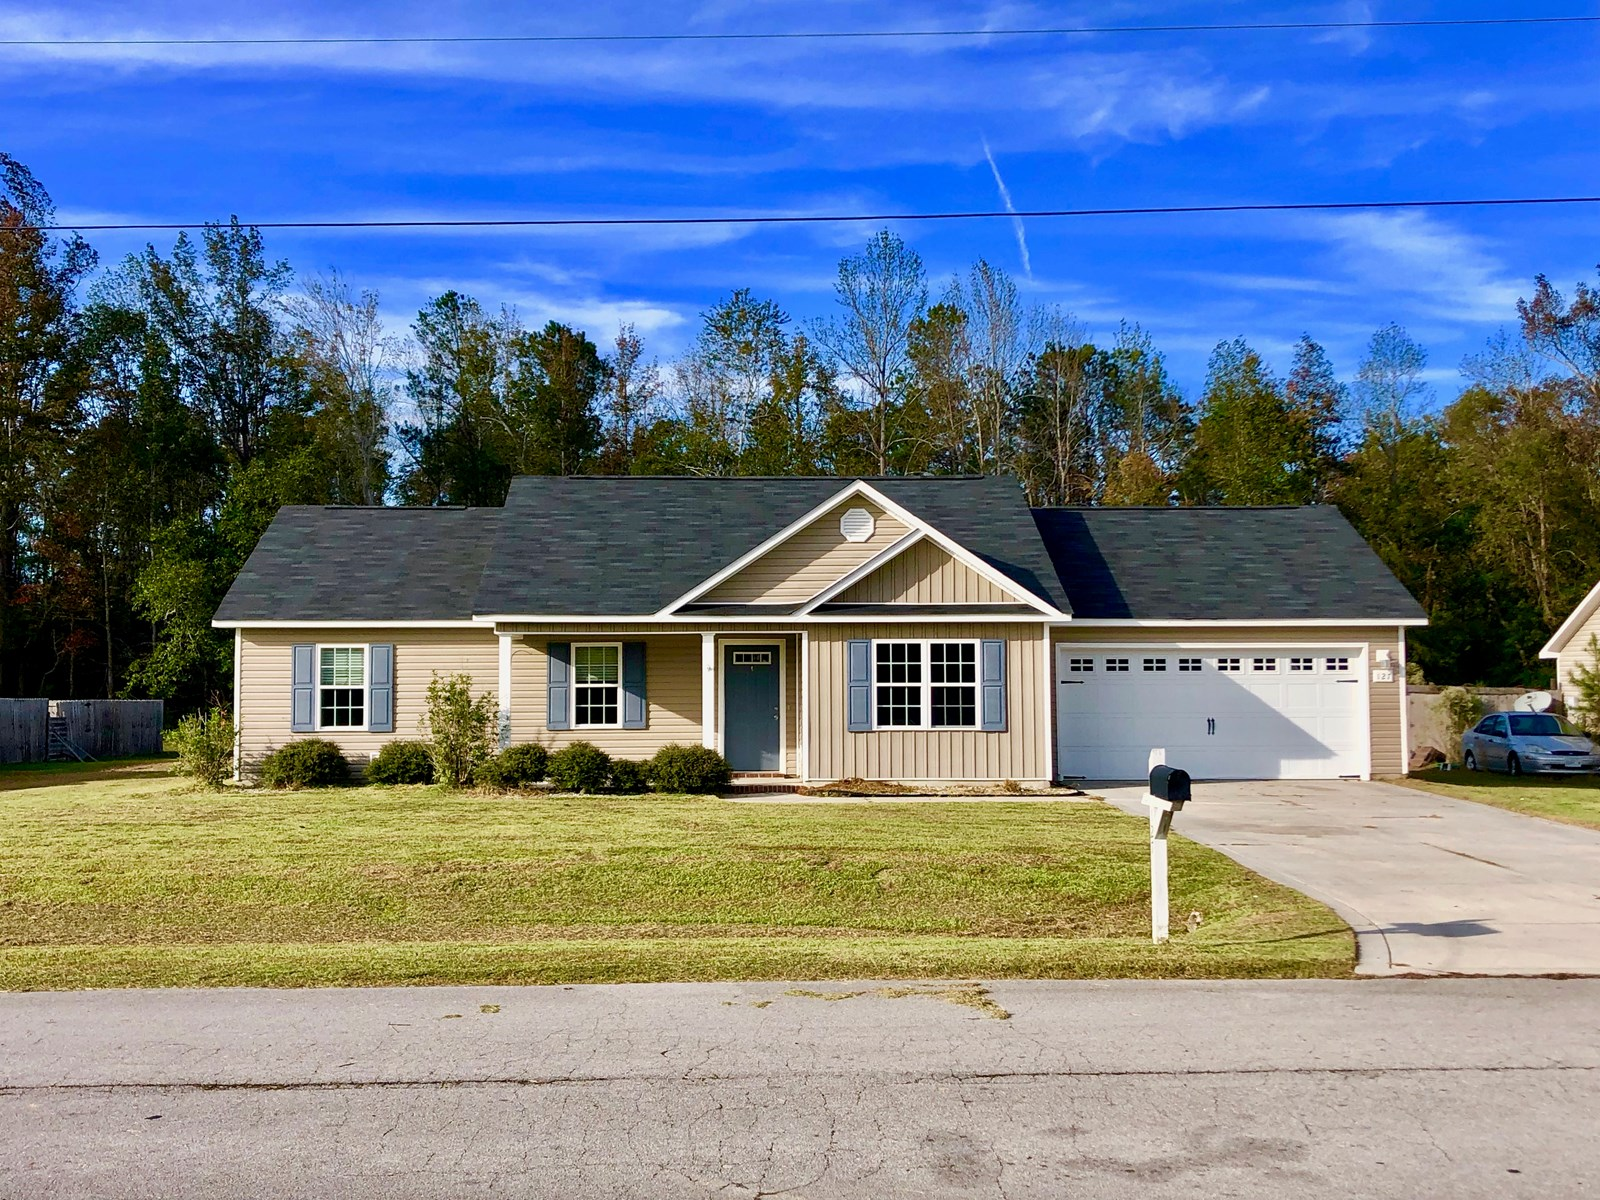 Residential Property for sale in Jacksonville, NC